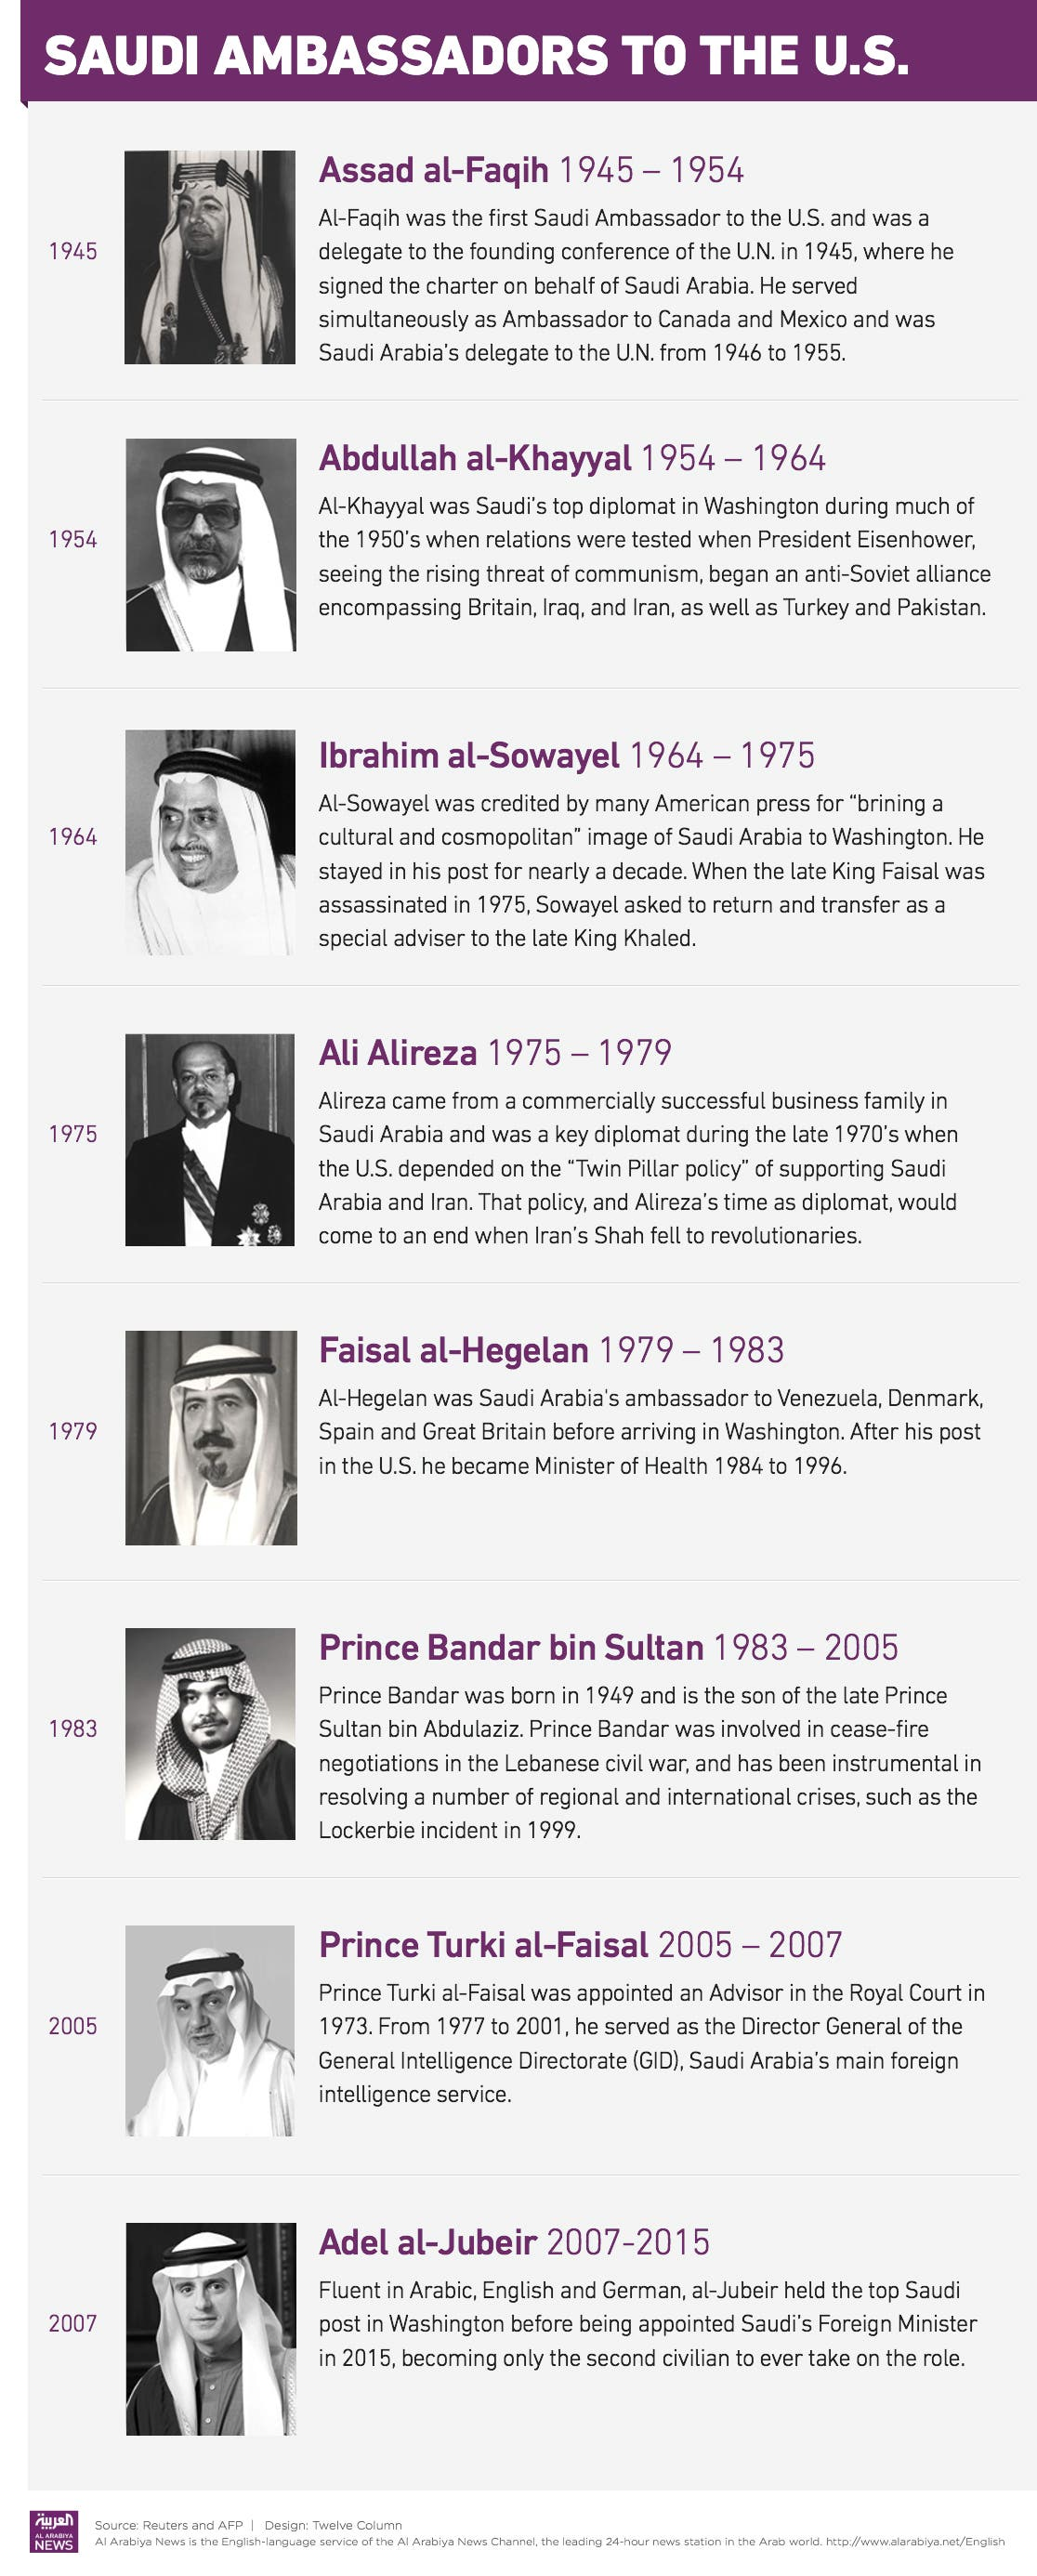 Infographic: Saudi ambassadors to the U.S